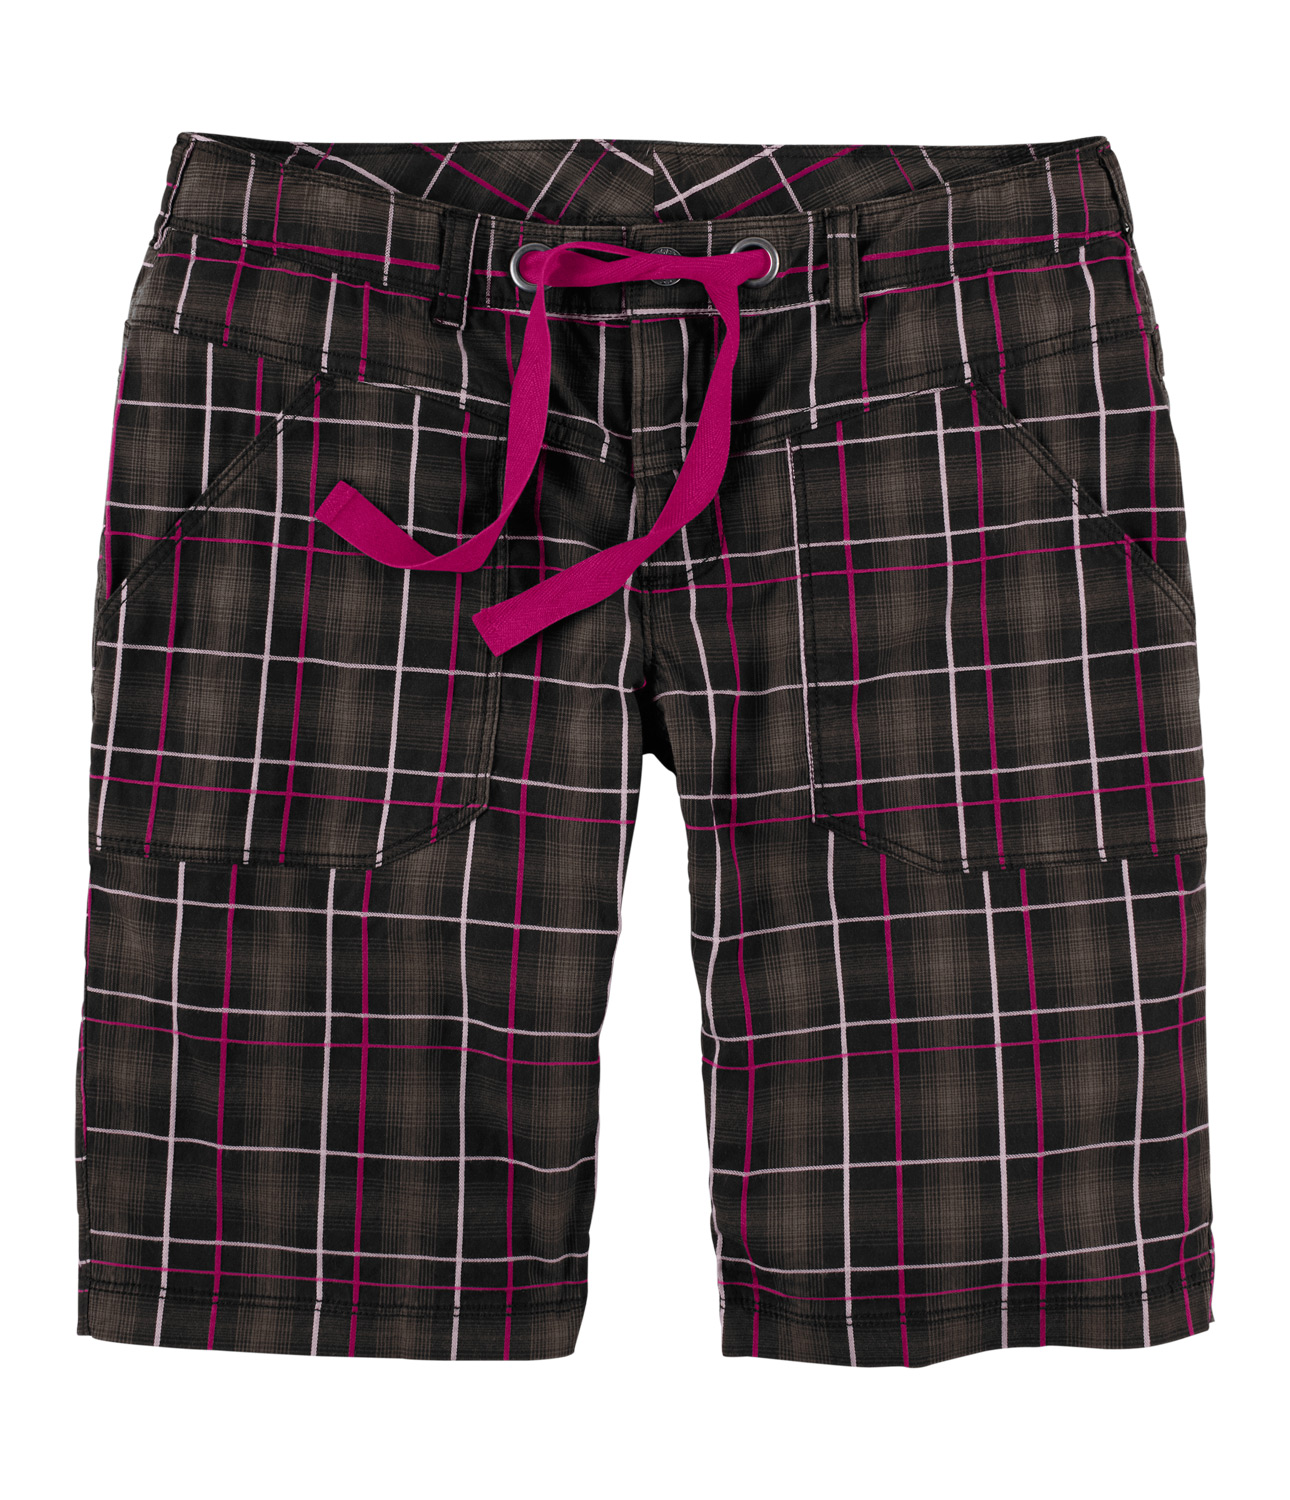 New midweight cotton short features slight Elastane stretch twill fabric for increased movement and comfort on the trail. Available in two inseam length, and plaid or solid fabric depending on color selection.Key Features of The North Face Noble Stretch Shorts: Midweight, breathable, stretch cotton for all-around versatility Ultraviolet protection factor (UPF) 50 Constructed waist with drawstrings - $27.95